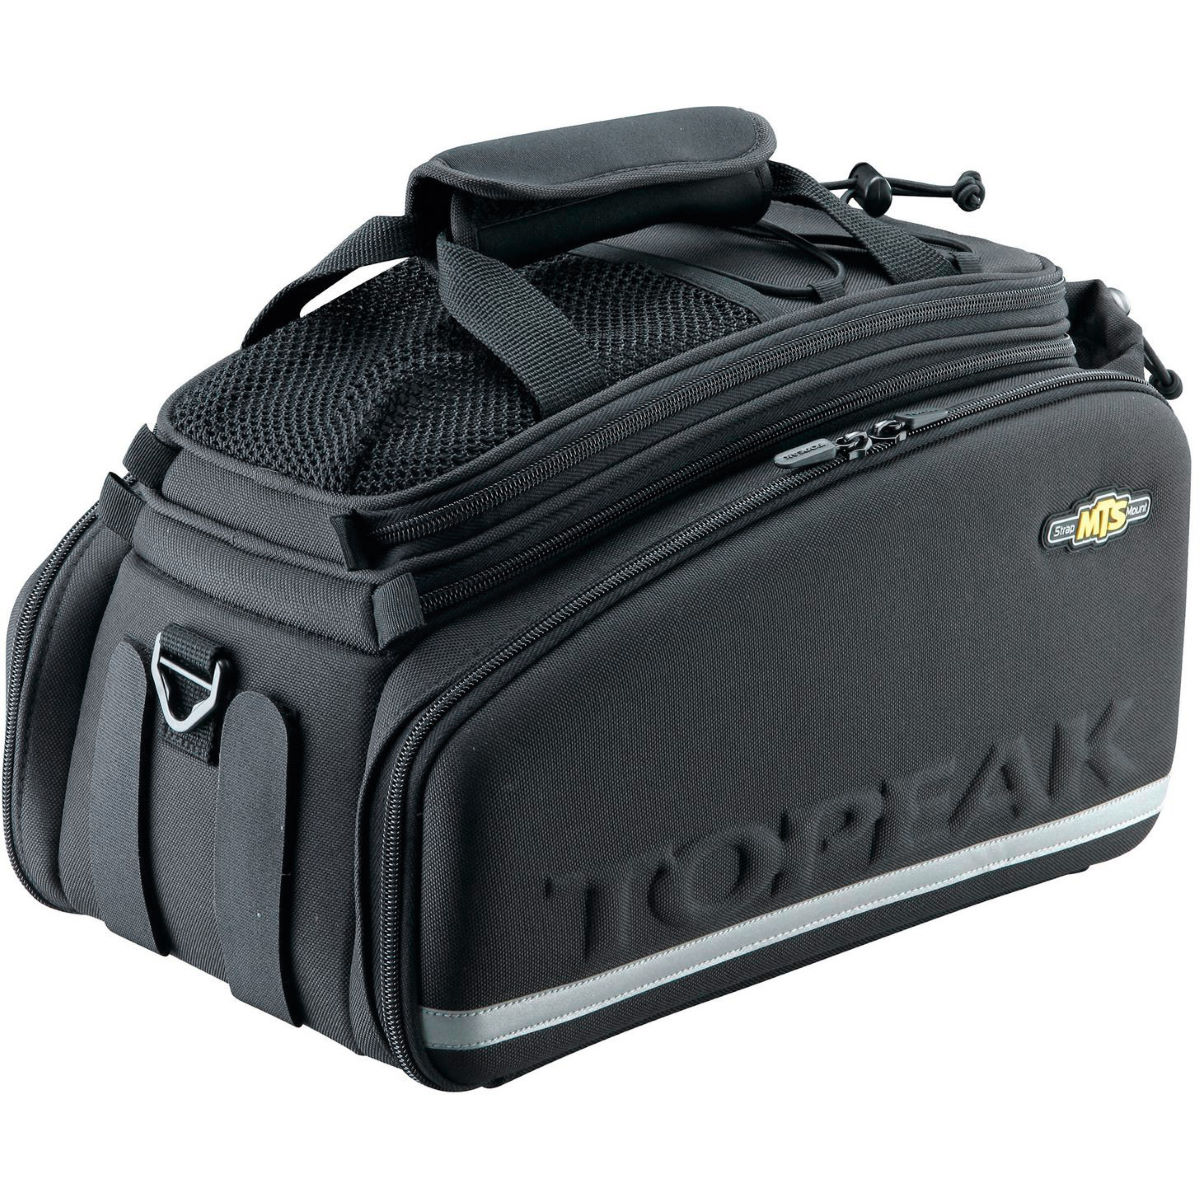 Topeak Topeak Trunk Bag DXP   Rack Bags